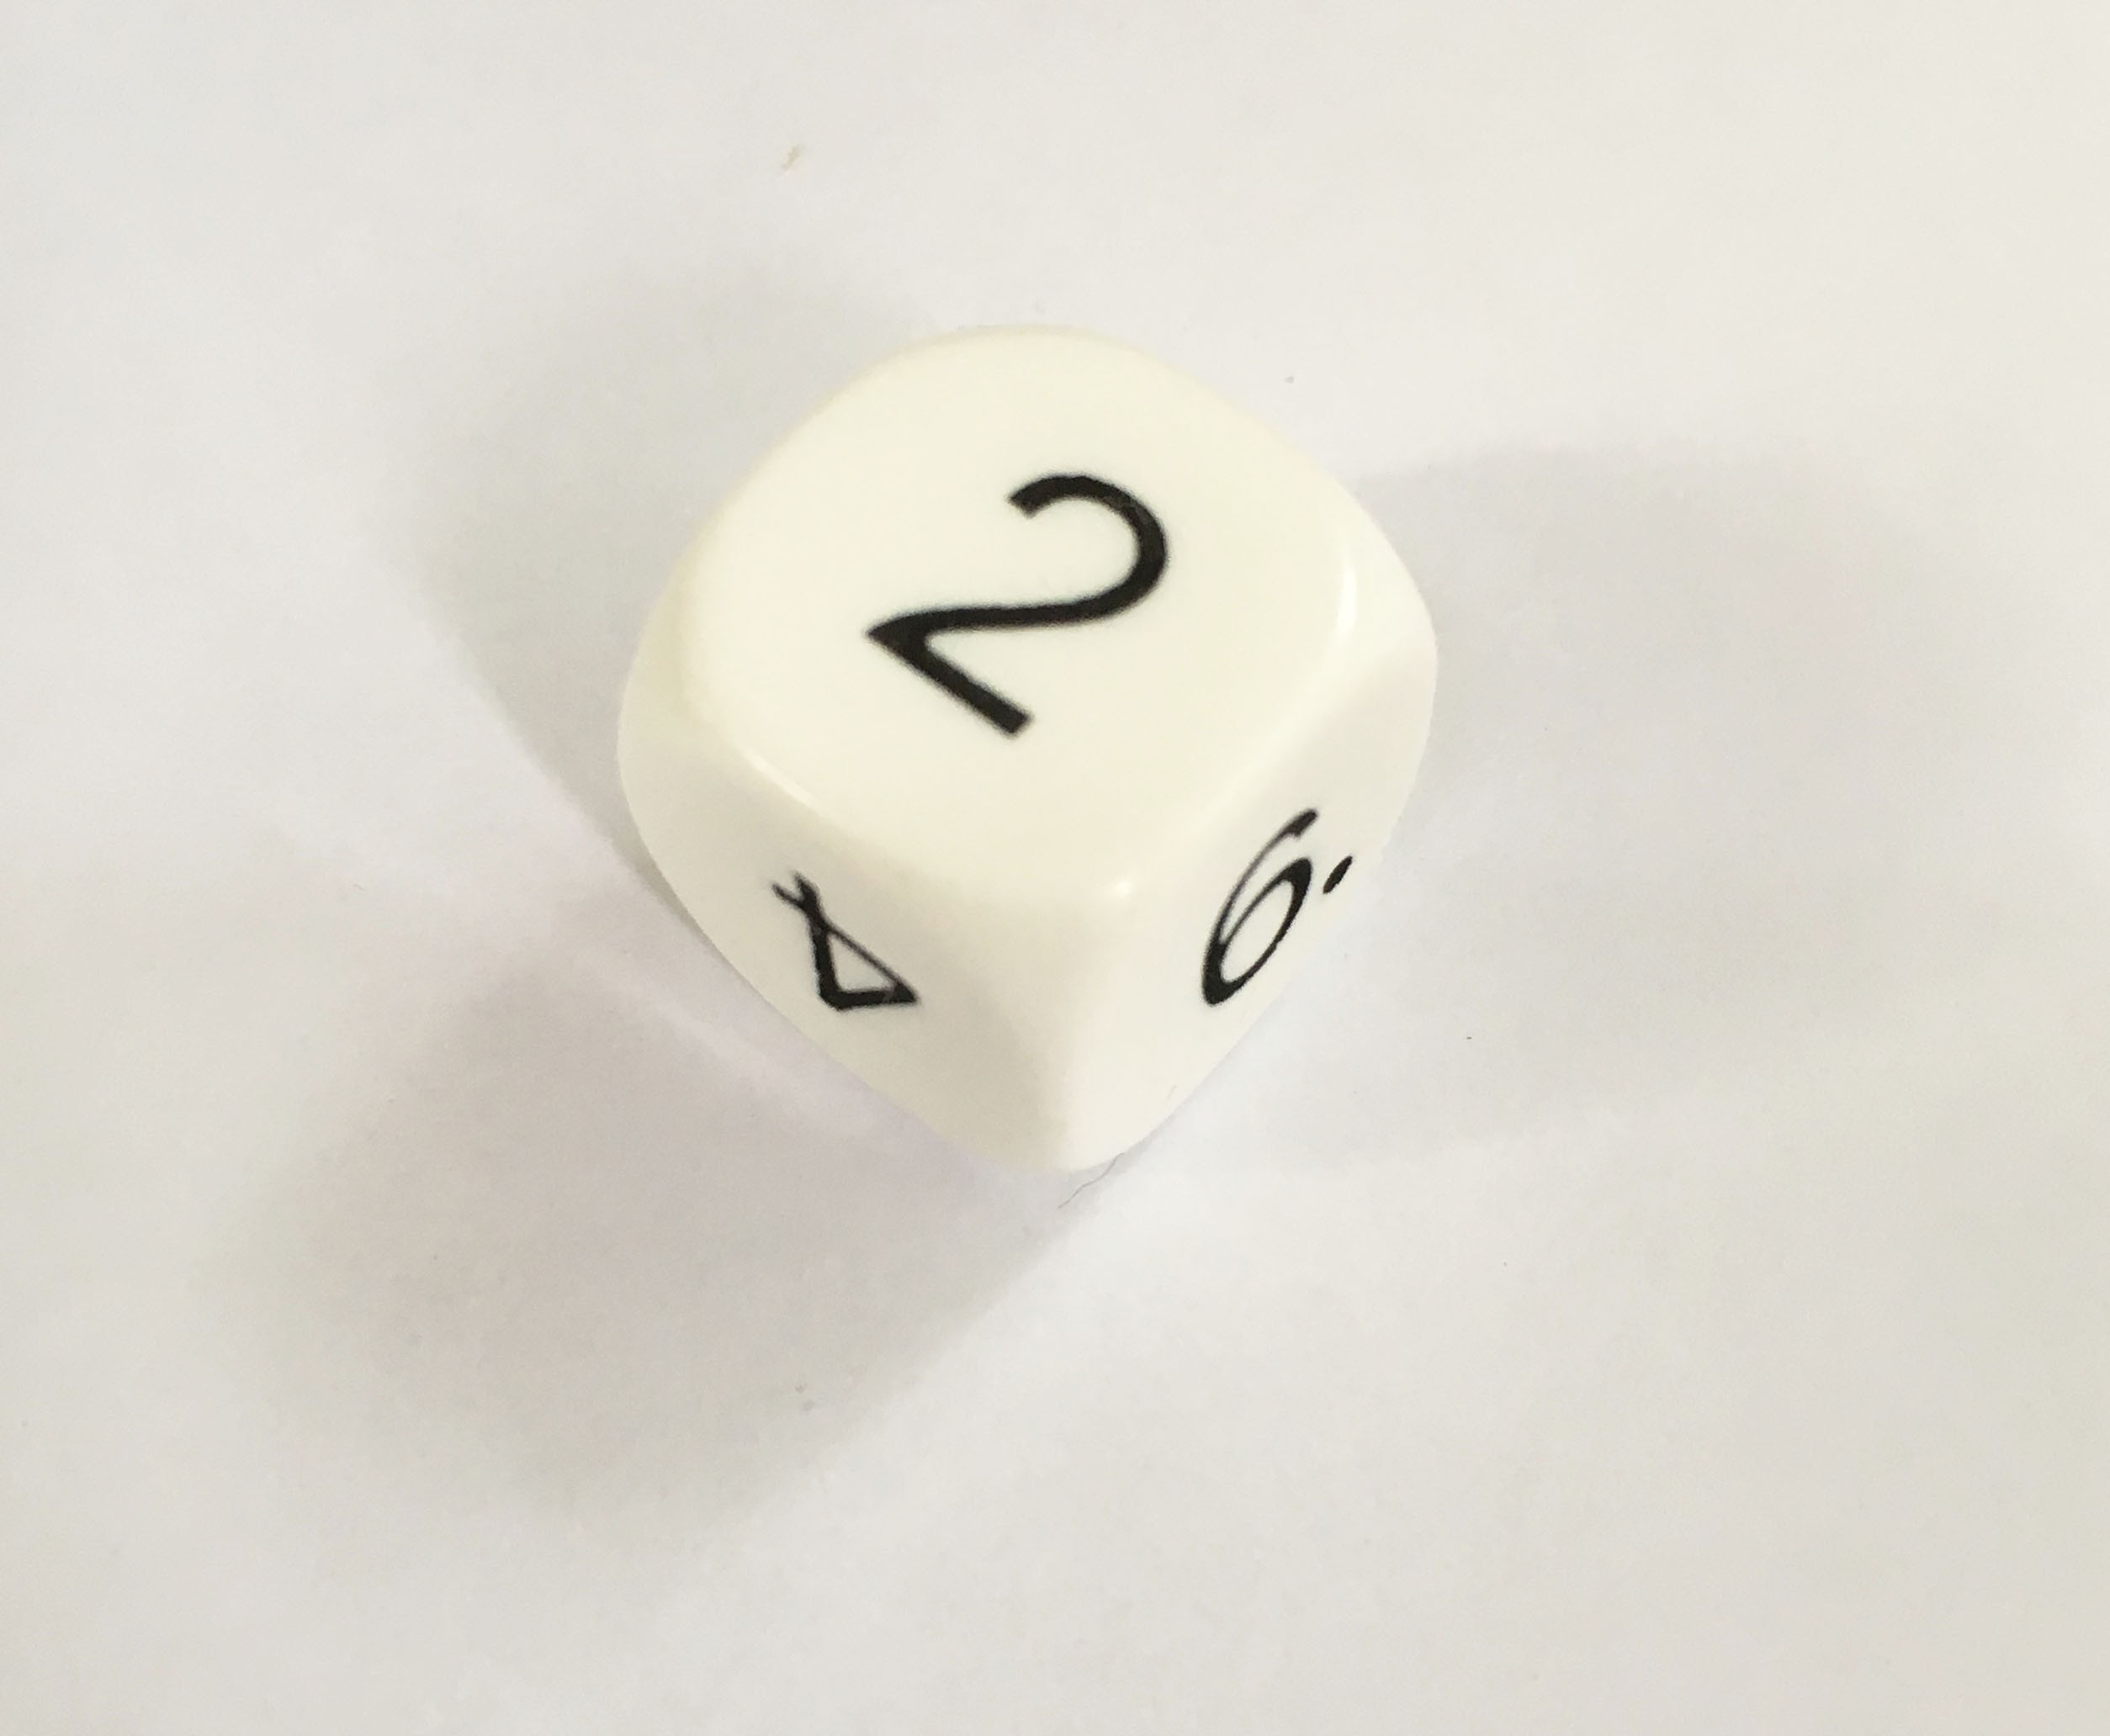 White 16mm single die numbered 1-6